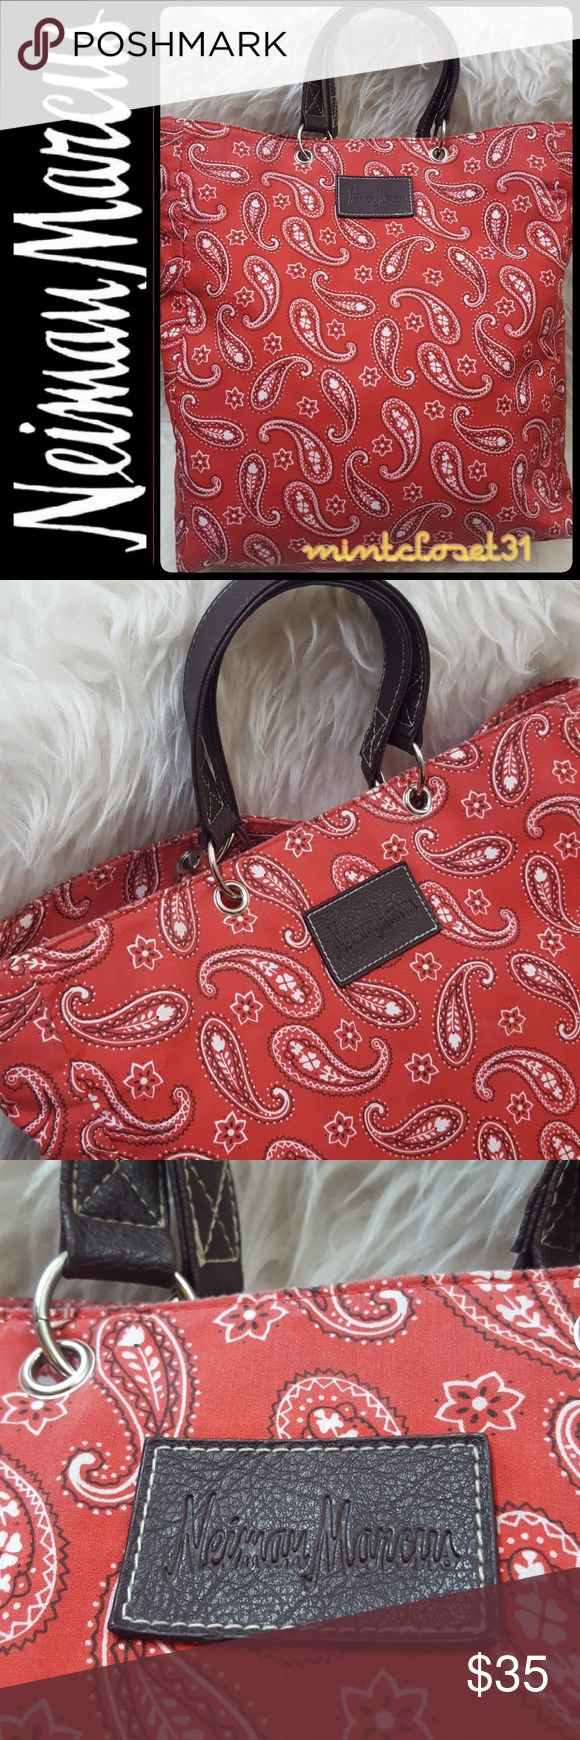 Neiman Marcus Tote Bag Neiman Marcus Designer Tote Bag in Red Canvas! Features the Iconic Neiman Marcus Logo Print on Front plate! Double Handles in silver Tone Rings with Open Top! Fully Lined Interior! Approx Size 7.5x9.5x4.5 Inches! Used in Good Condition! Neiman Marcus Bags Totes